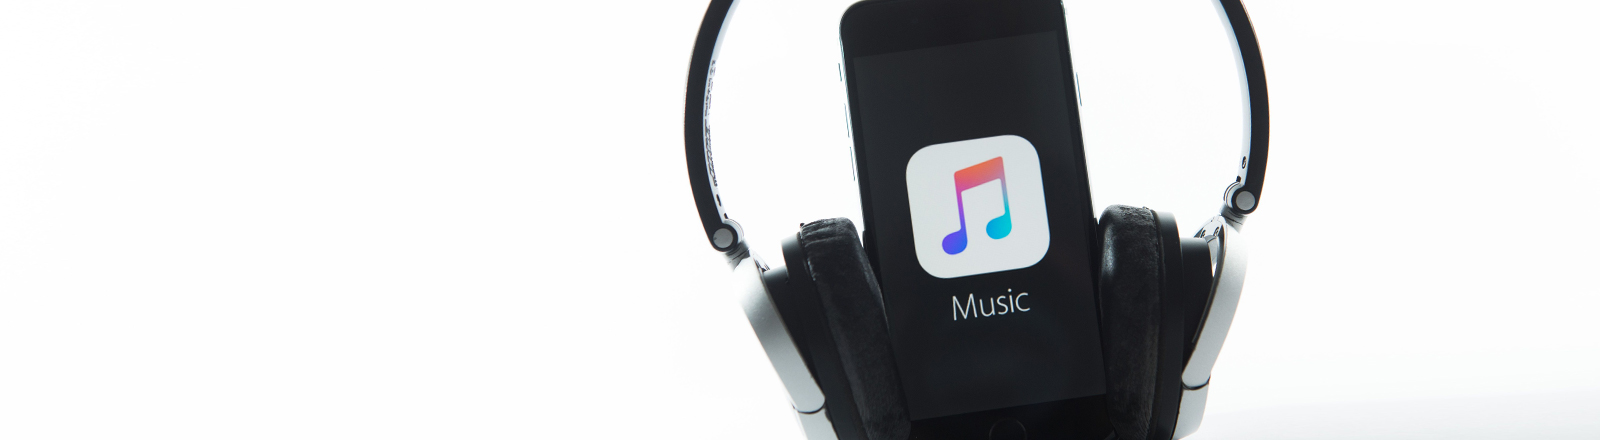 Apple Music startet am 30.06.2015.